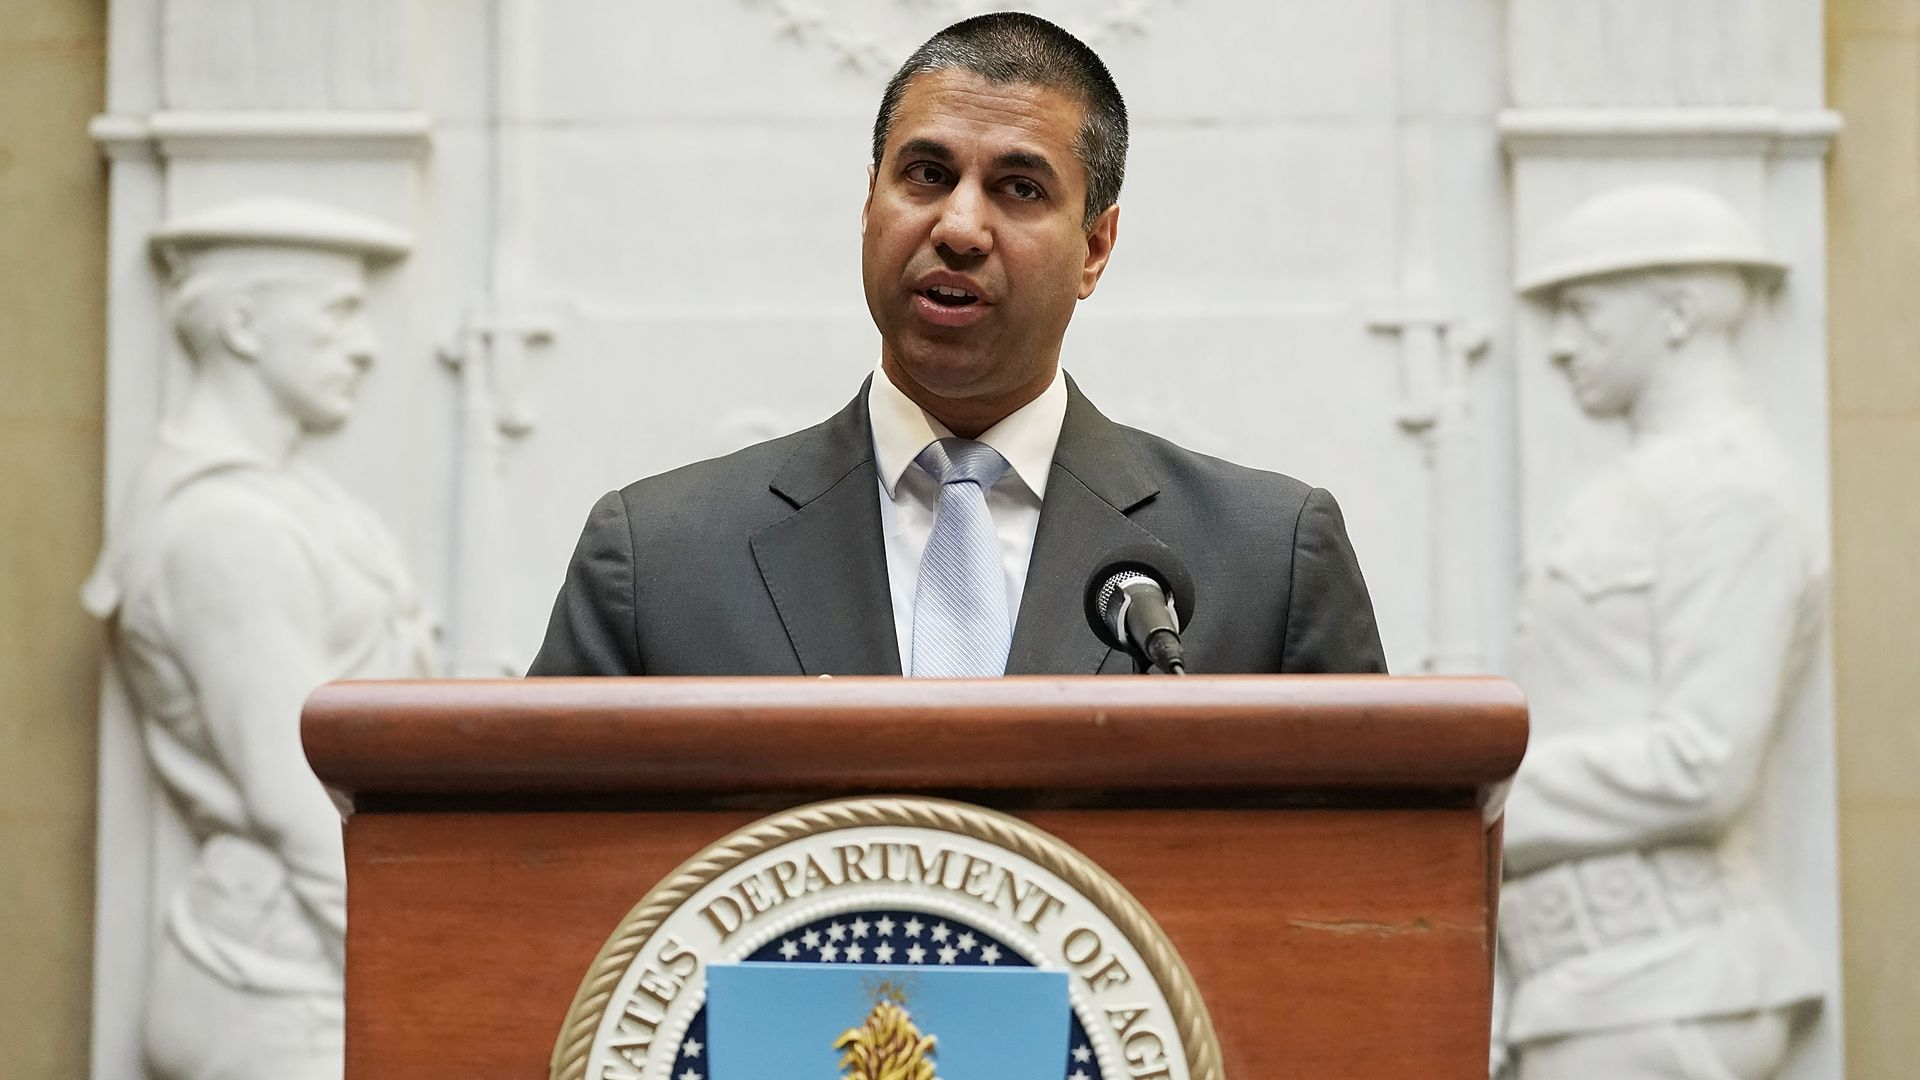 FCC Chairman Ajit Pai speaks behind a podium with the U.S. Department of Agriculture logo.